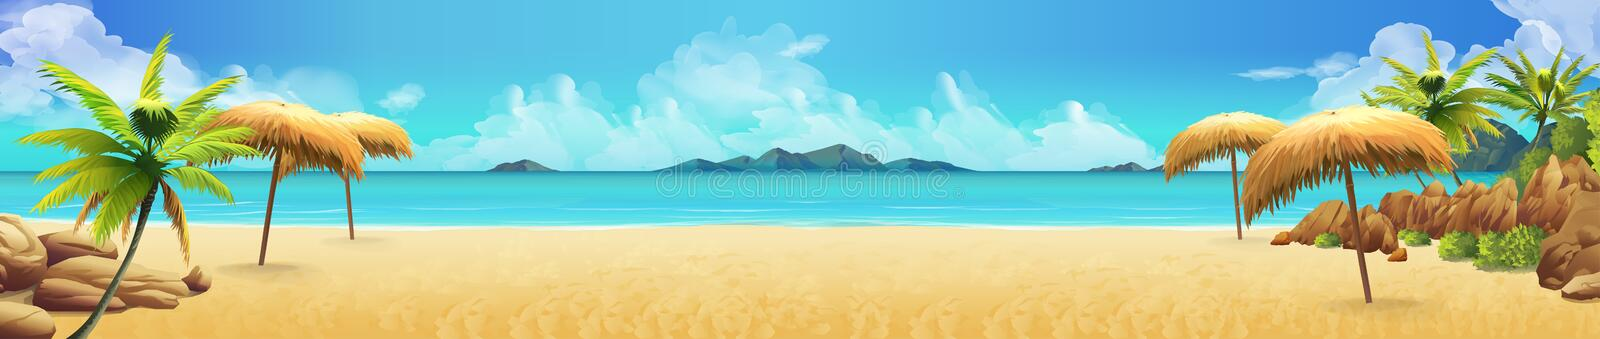 Panorama del mar, playa tropical Vector libre illustration